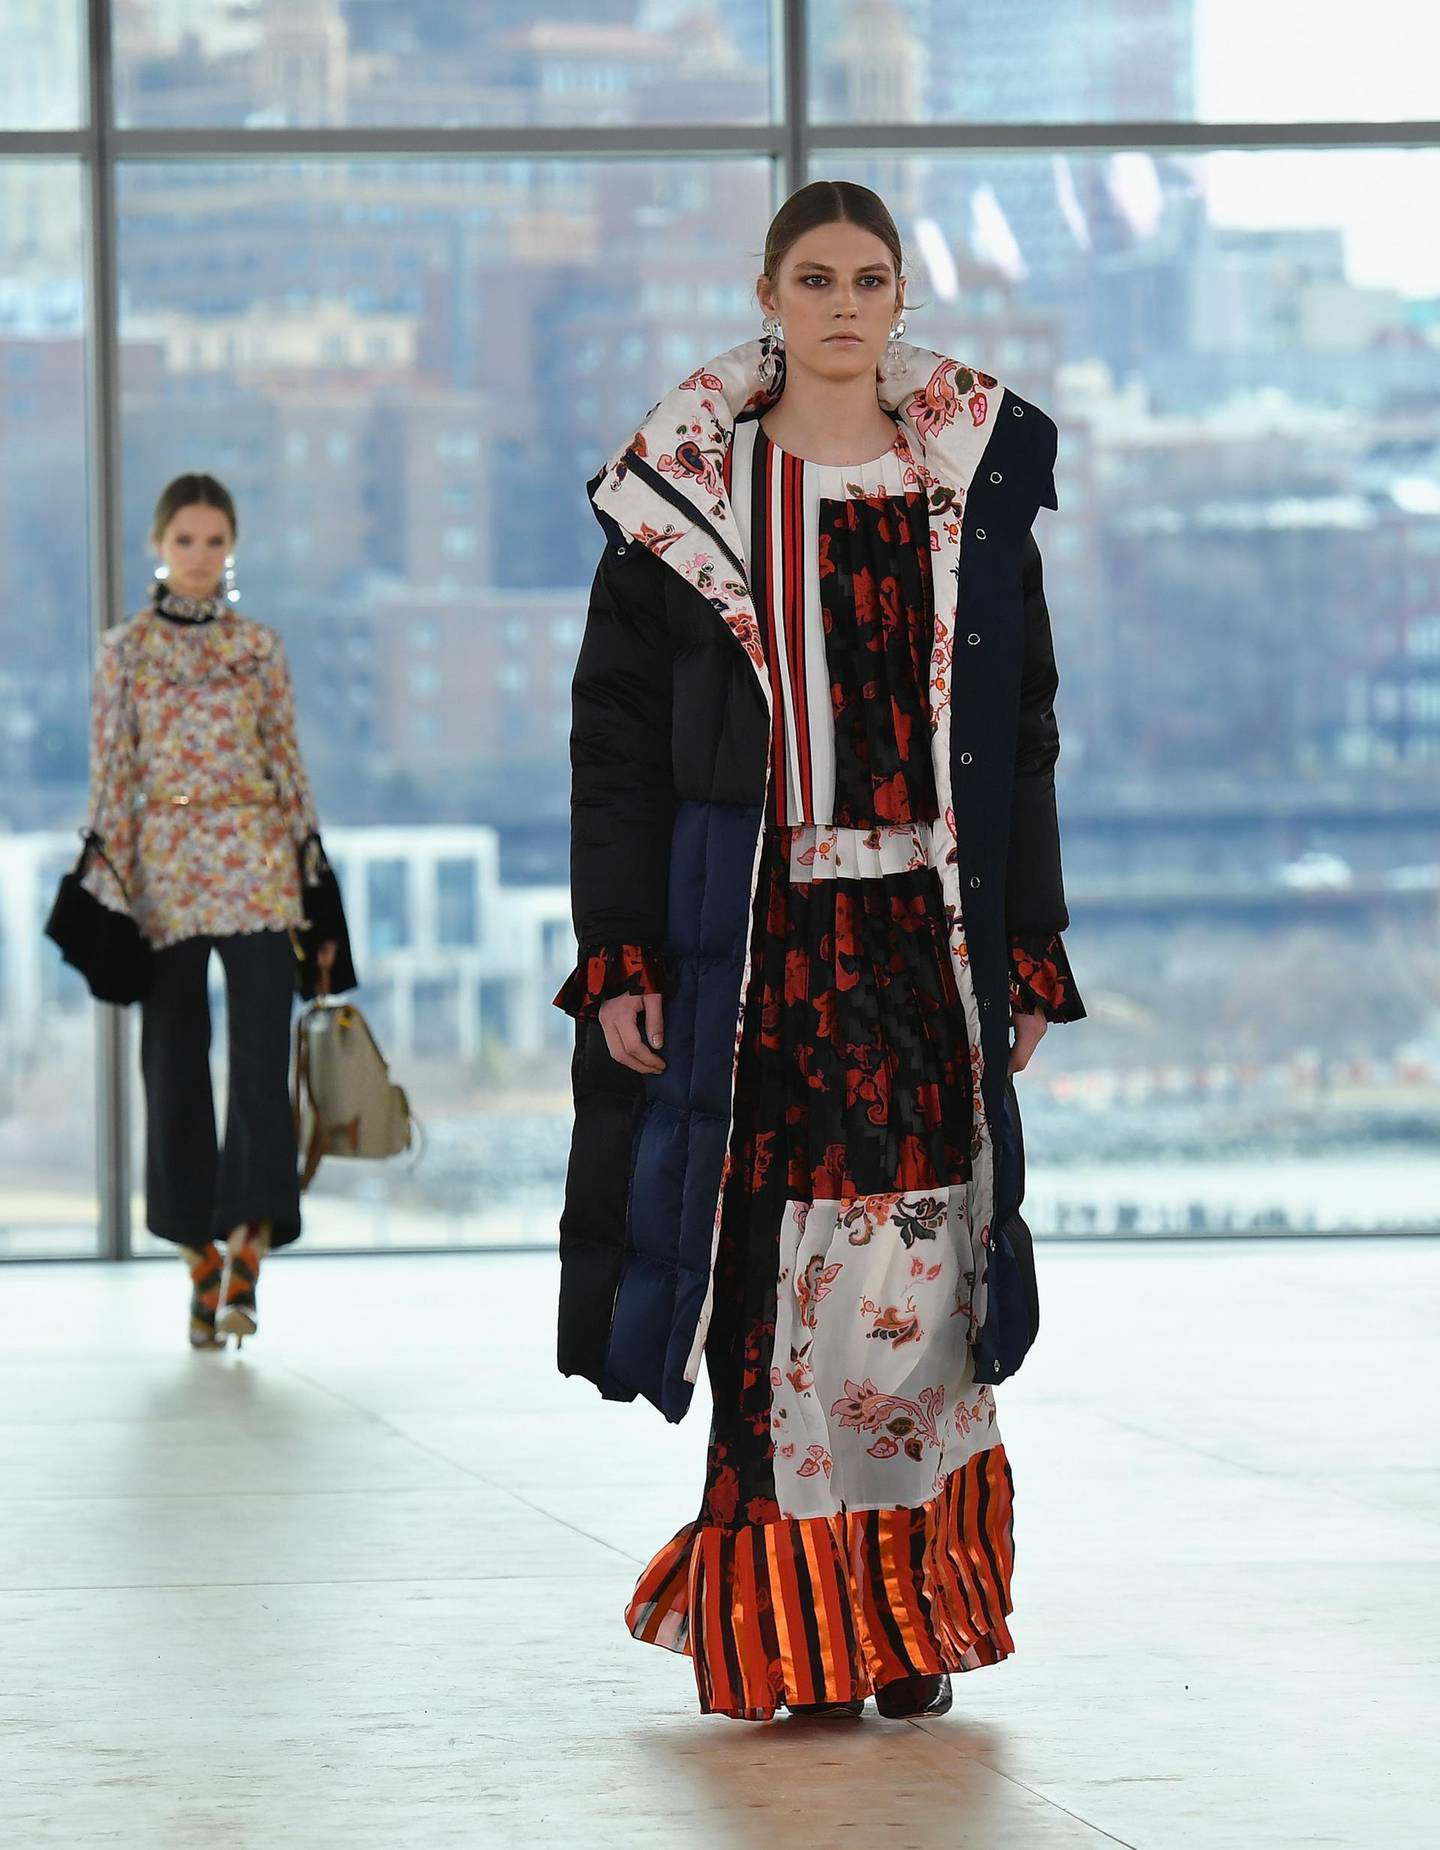 Models walk the runway for the Tory Burch Fall/Winter 2019 fashion show during New York Fashion Week at Pier 17 on February 10, 2019 in New York City.  / AFP / Angela Weiss